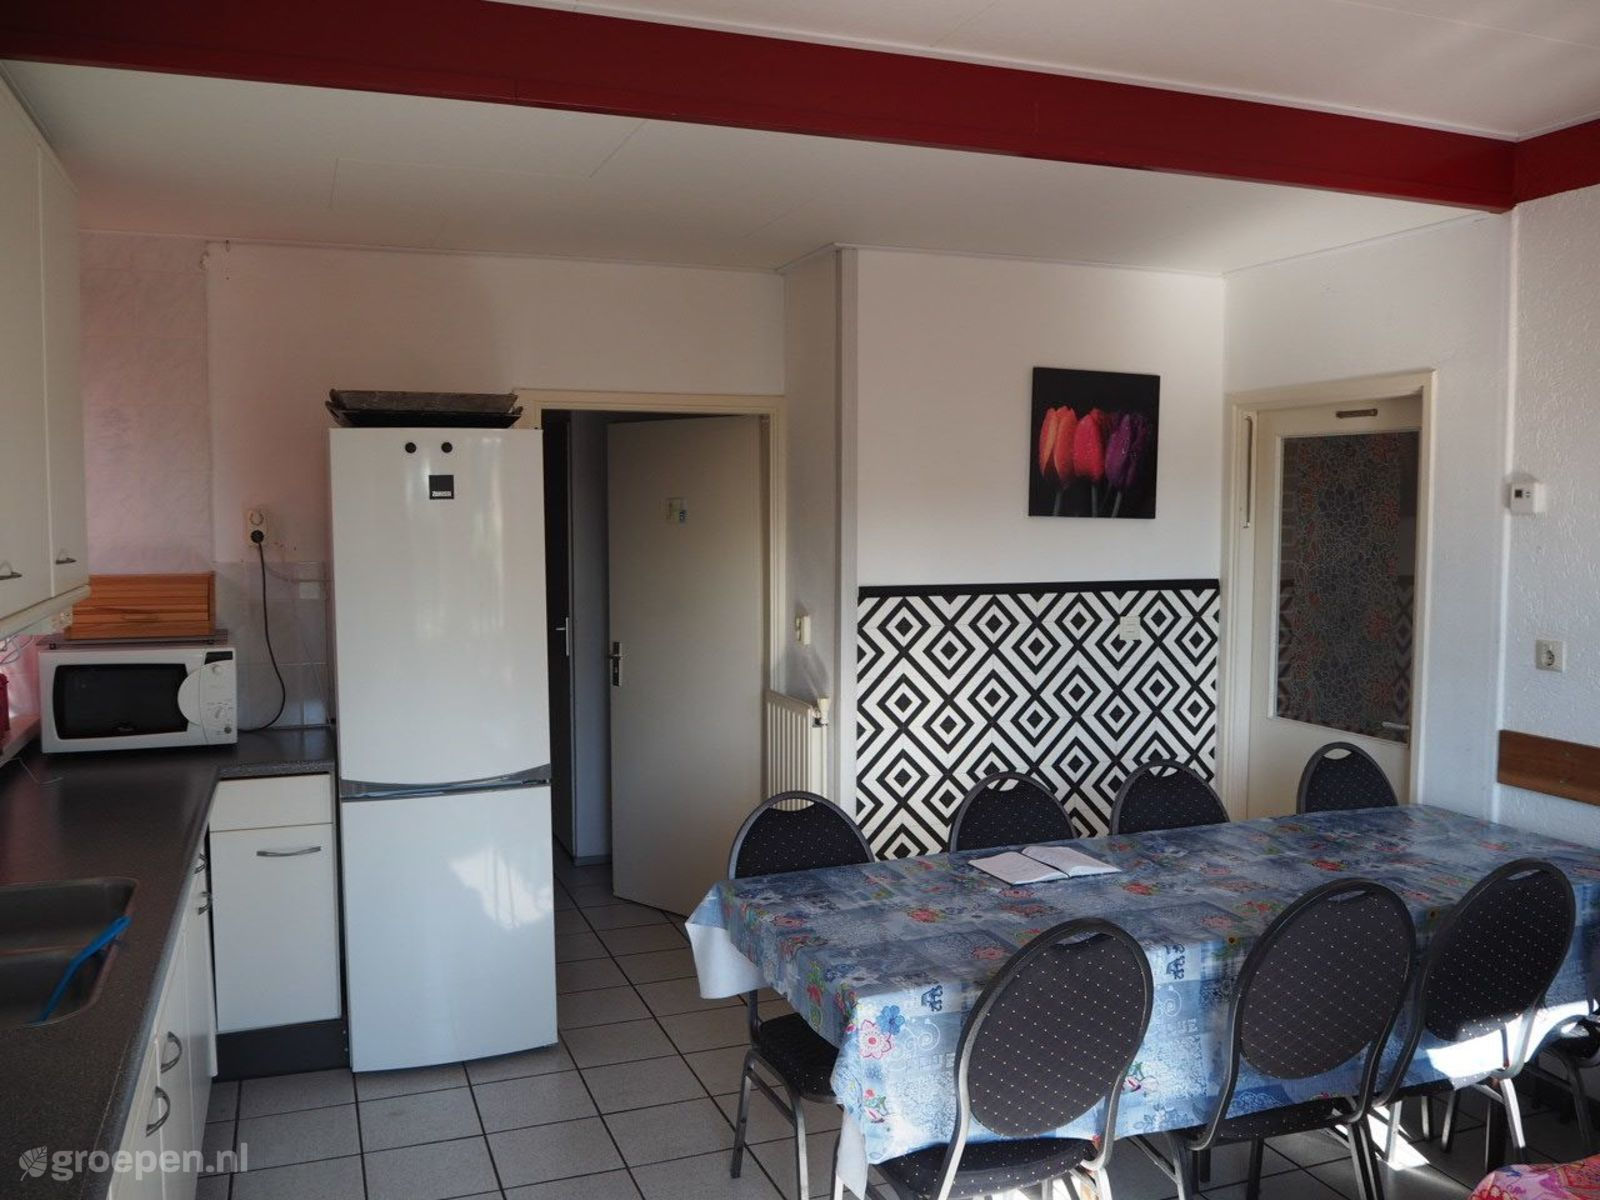 Group accommodation Pesse